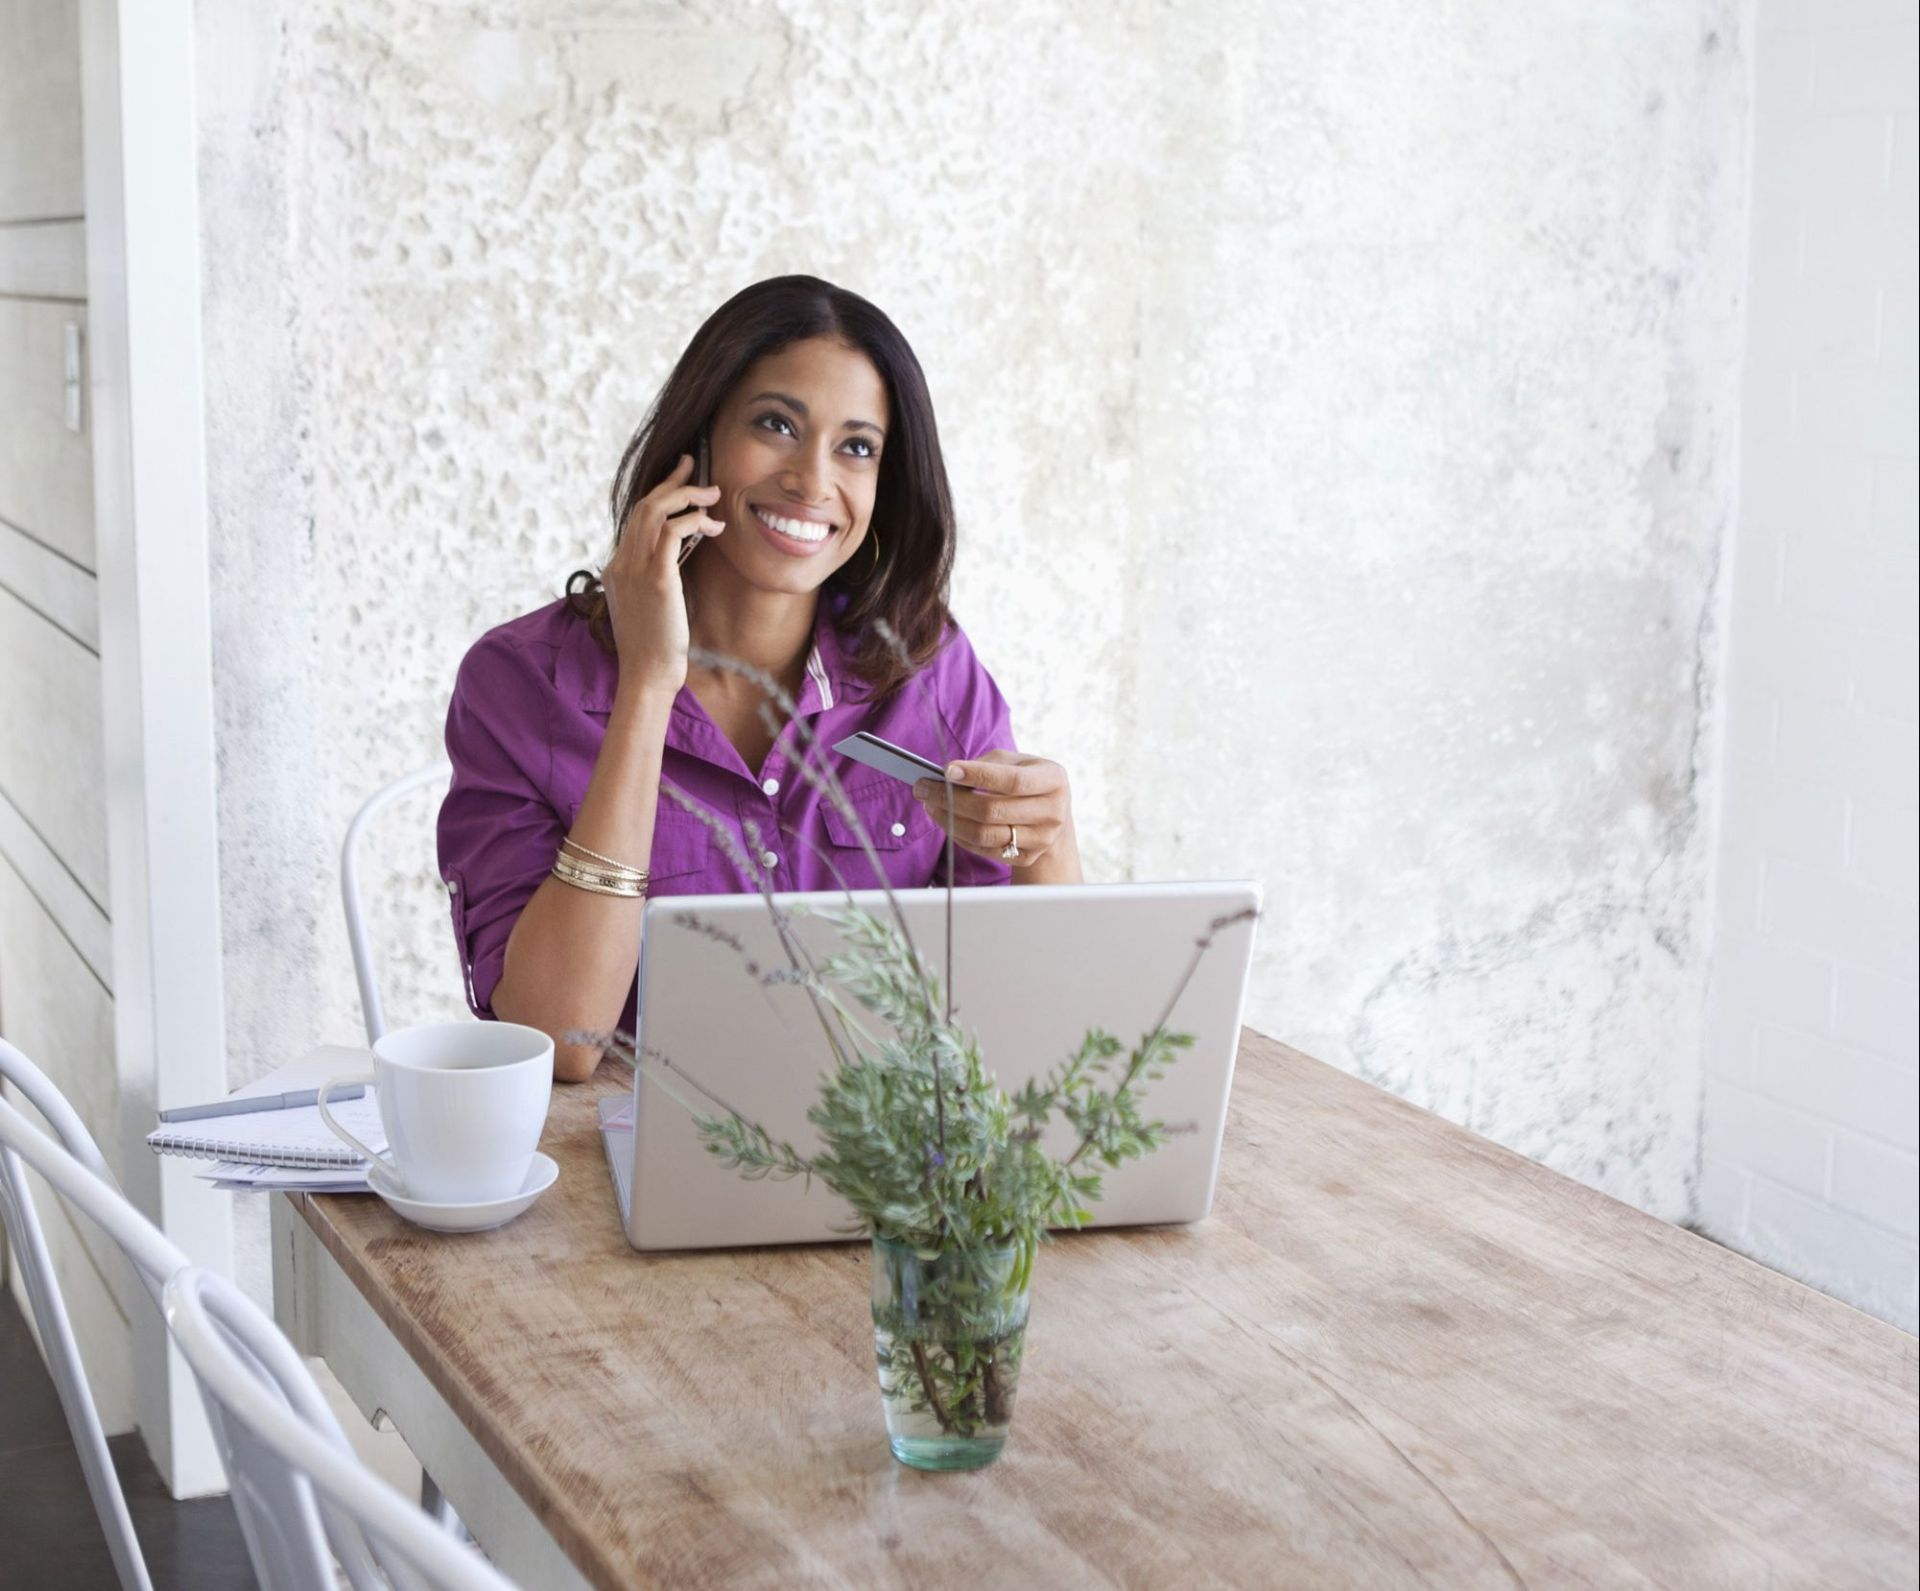 Photo of woman using computer